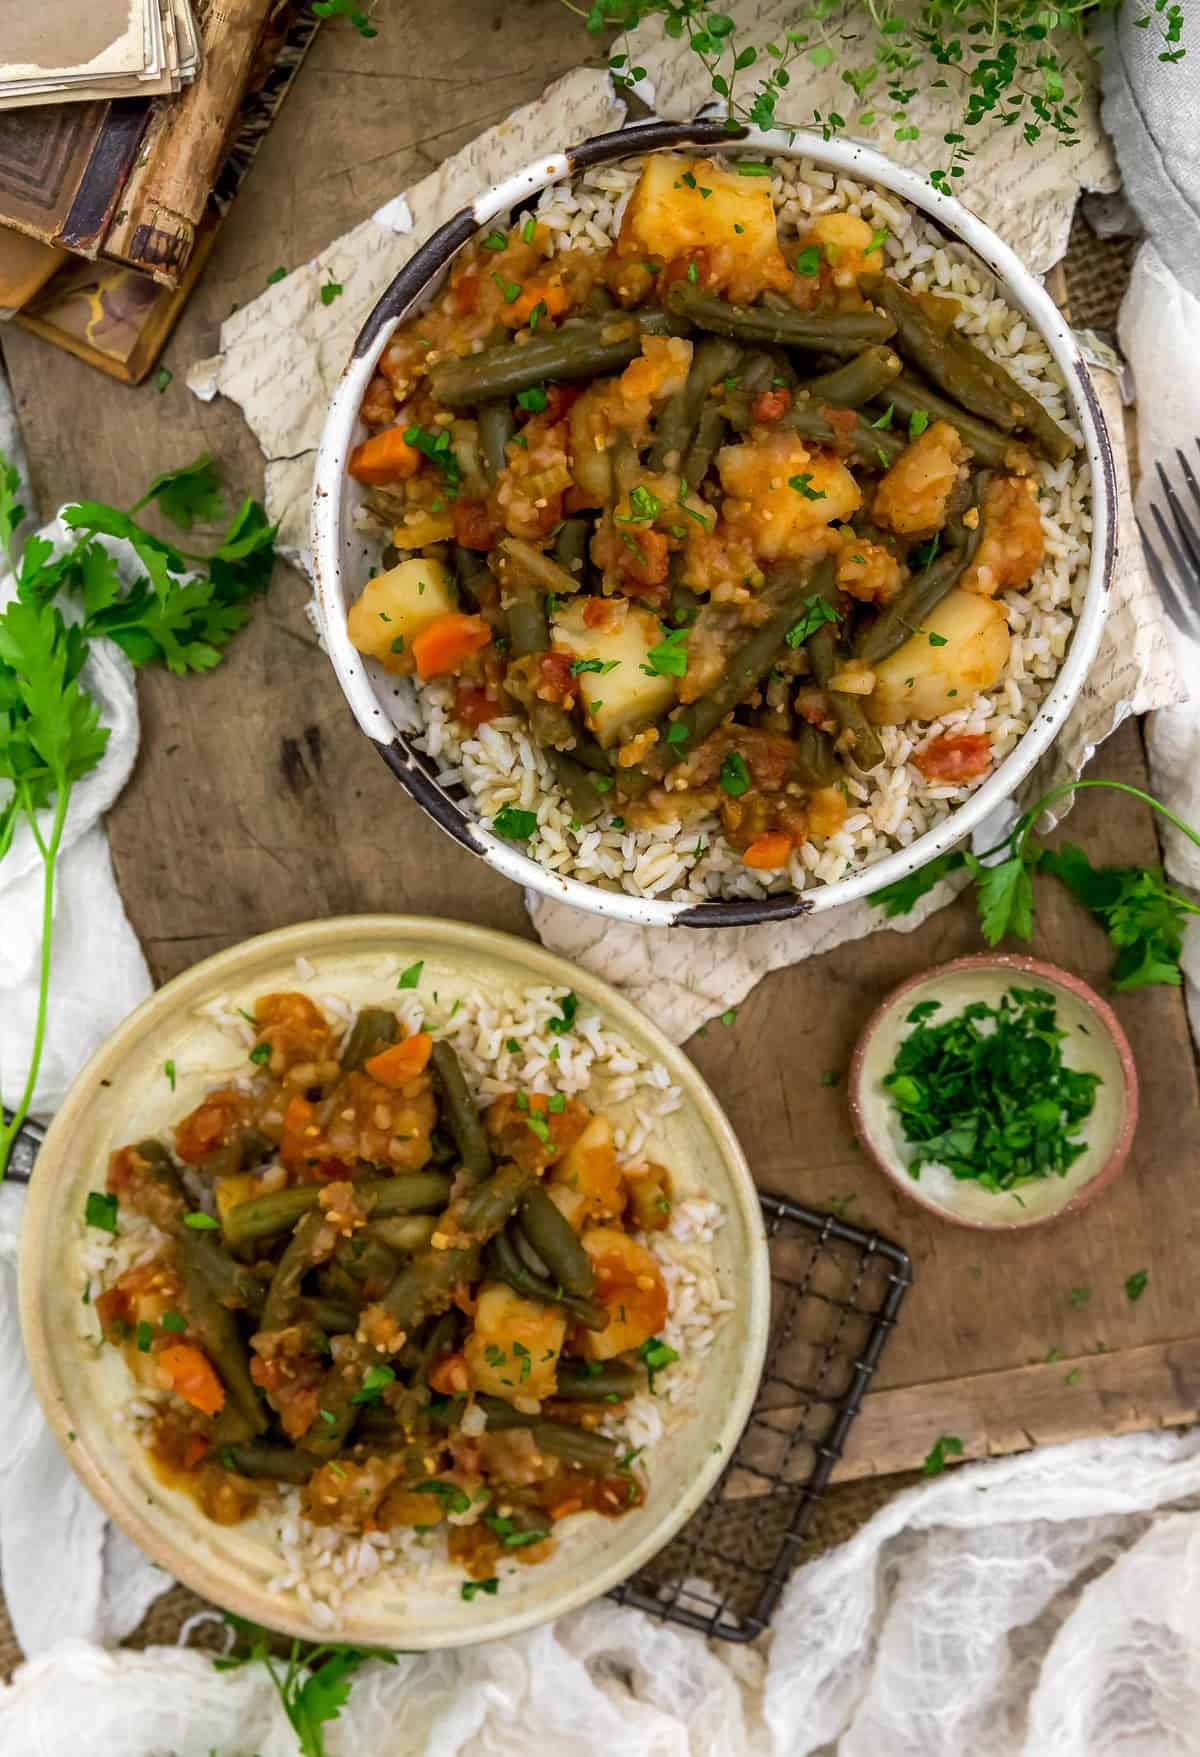 Tablescape of Lebanese Stewed Green Beans and Potatoes